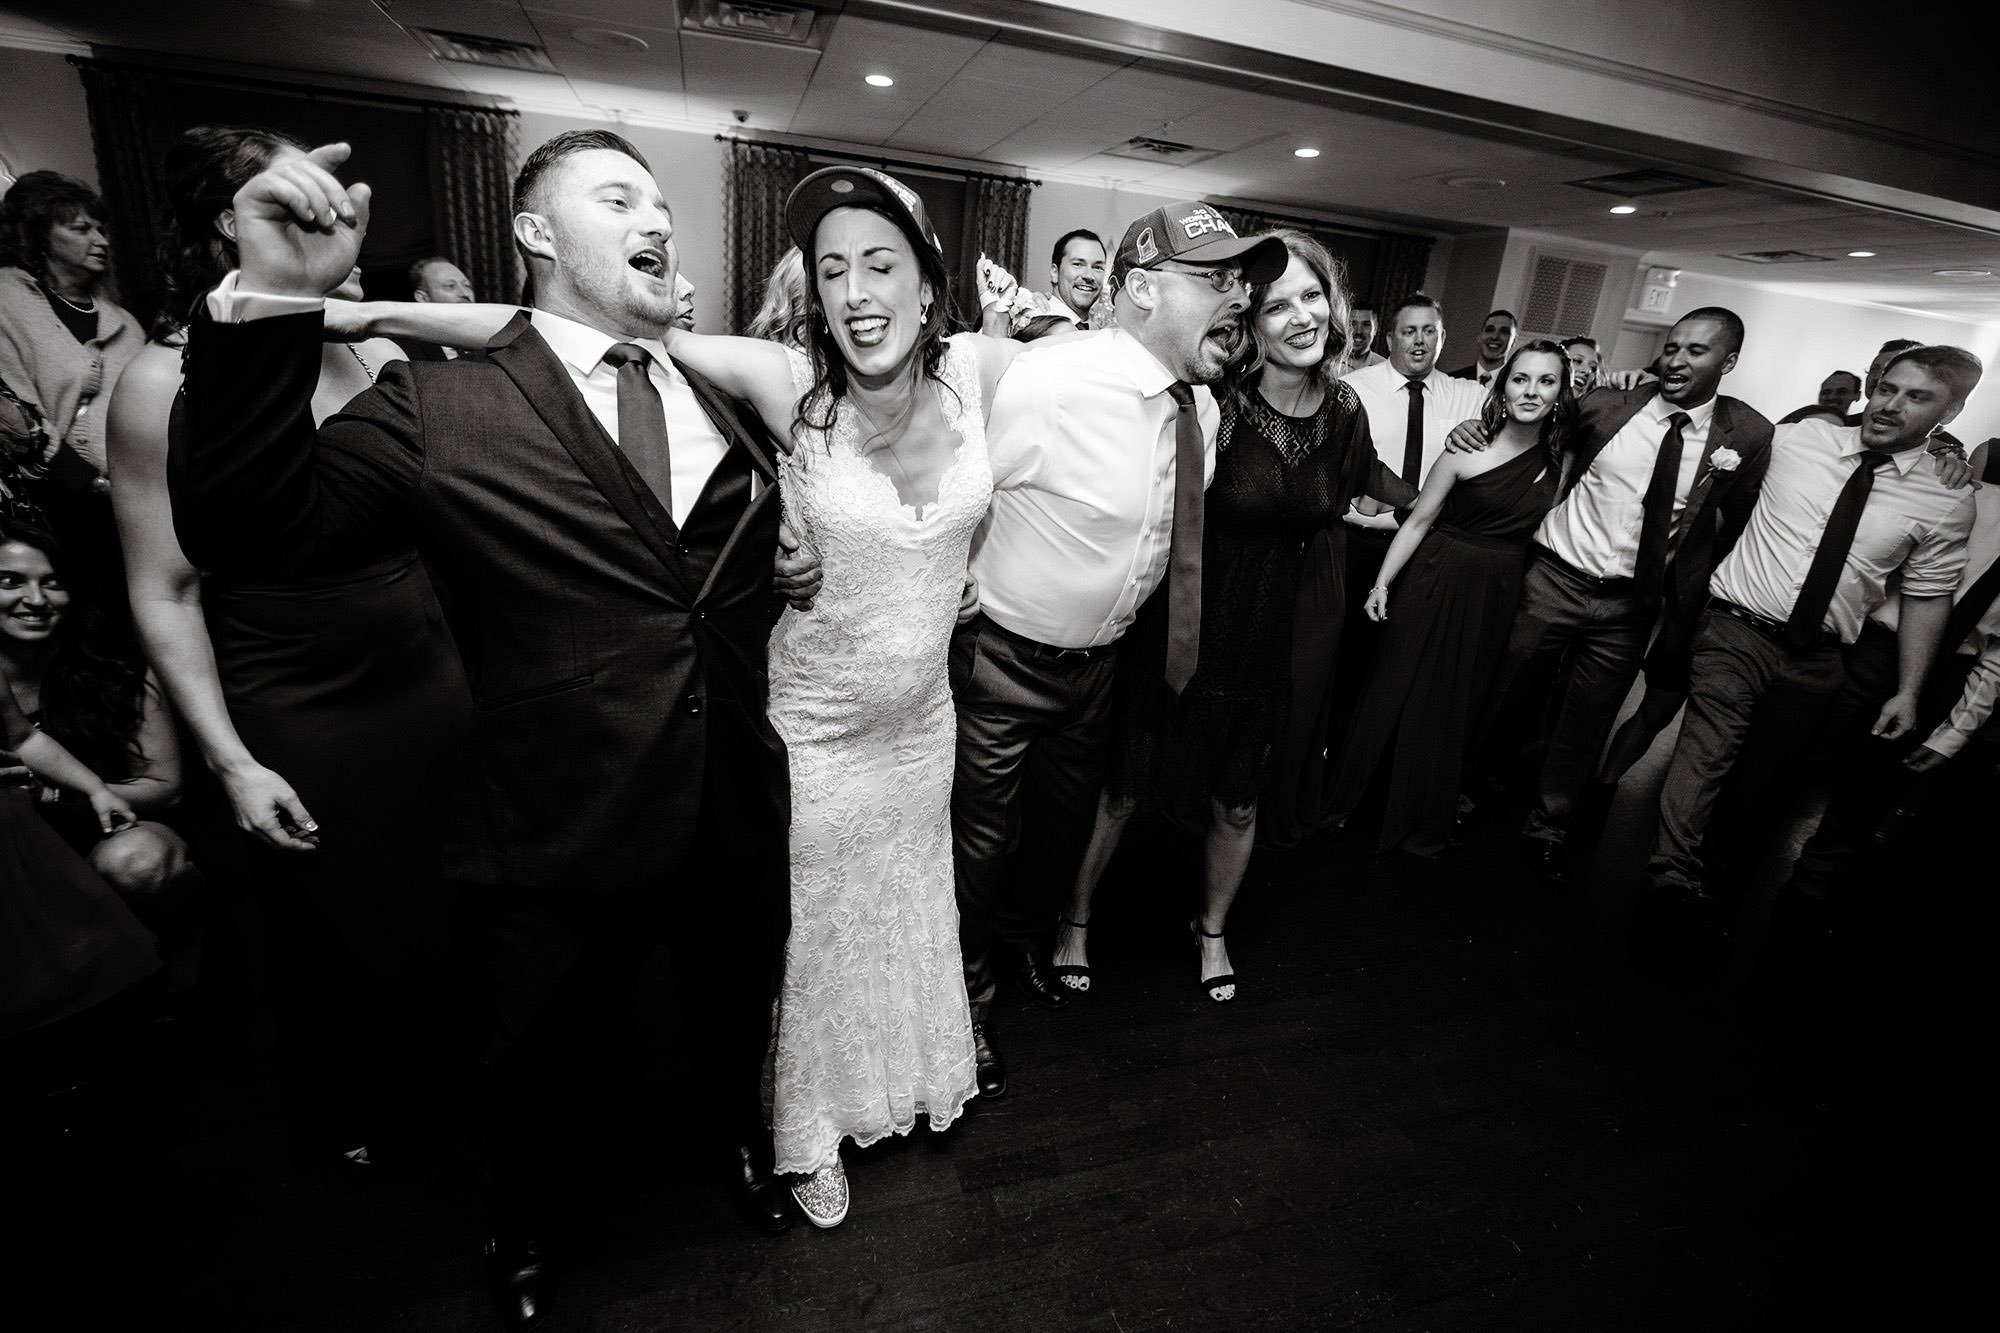 The couple dances with their guests during The Villa at Ridder Country Club wedding reception.